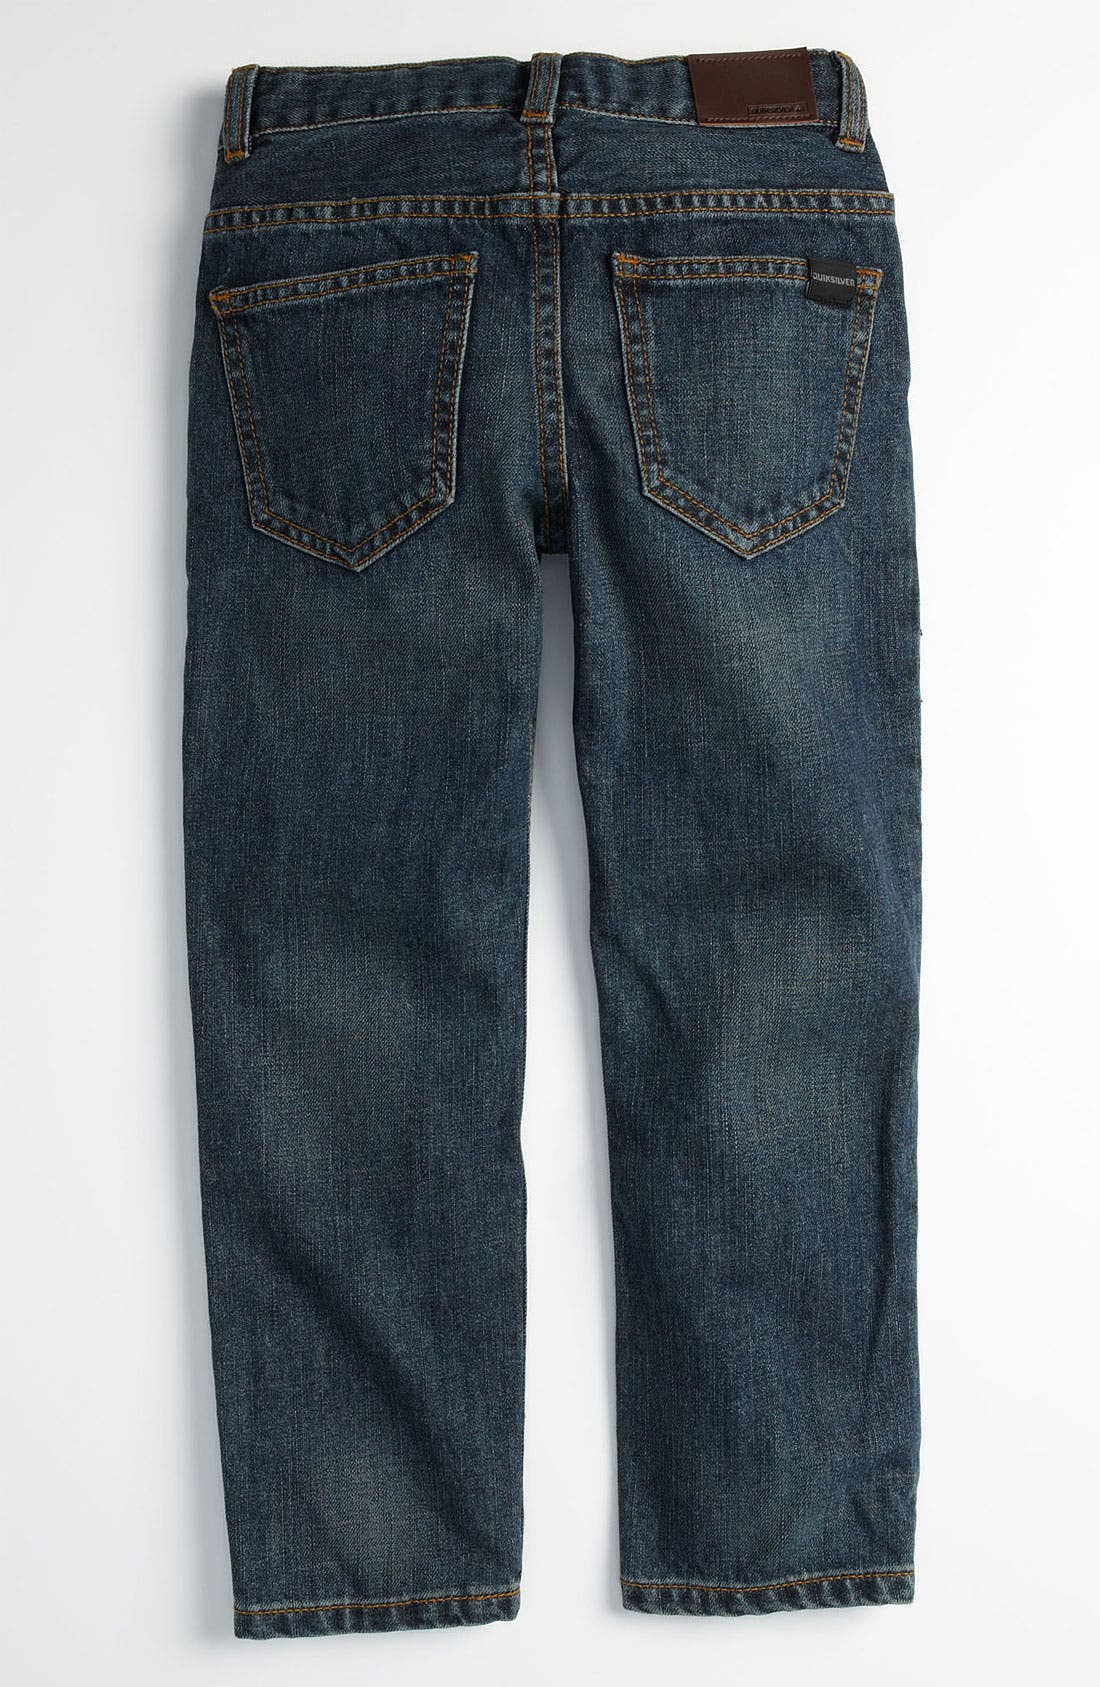 Alternate Image 1 Selected - Quiksilver 'Distortion' Jeans (Big Boys)